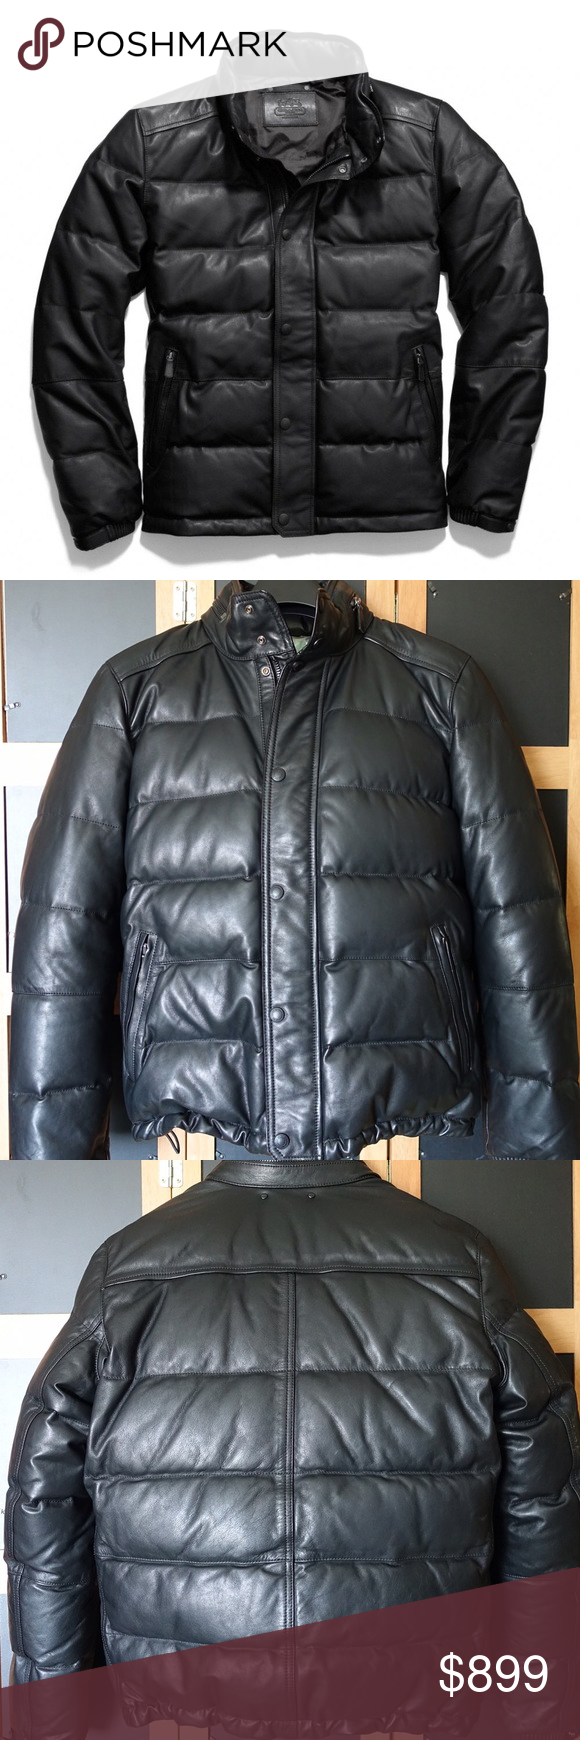 Sold Coach Clarkson Leather Down Jacket Leather Jackets Leather Zipper [ 1740 x 580 Pixel ]